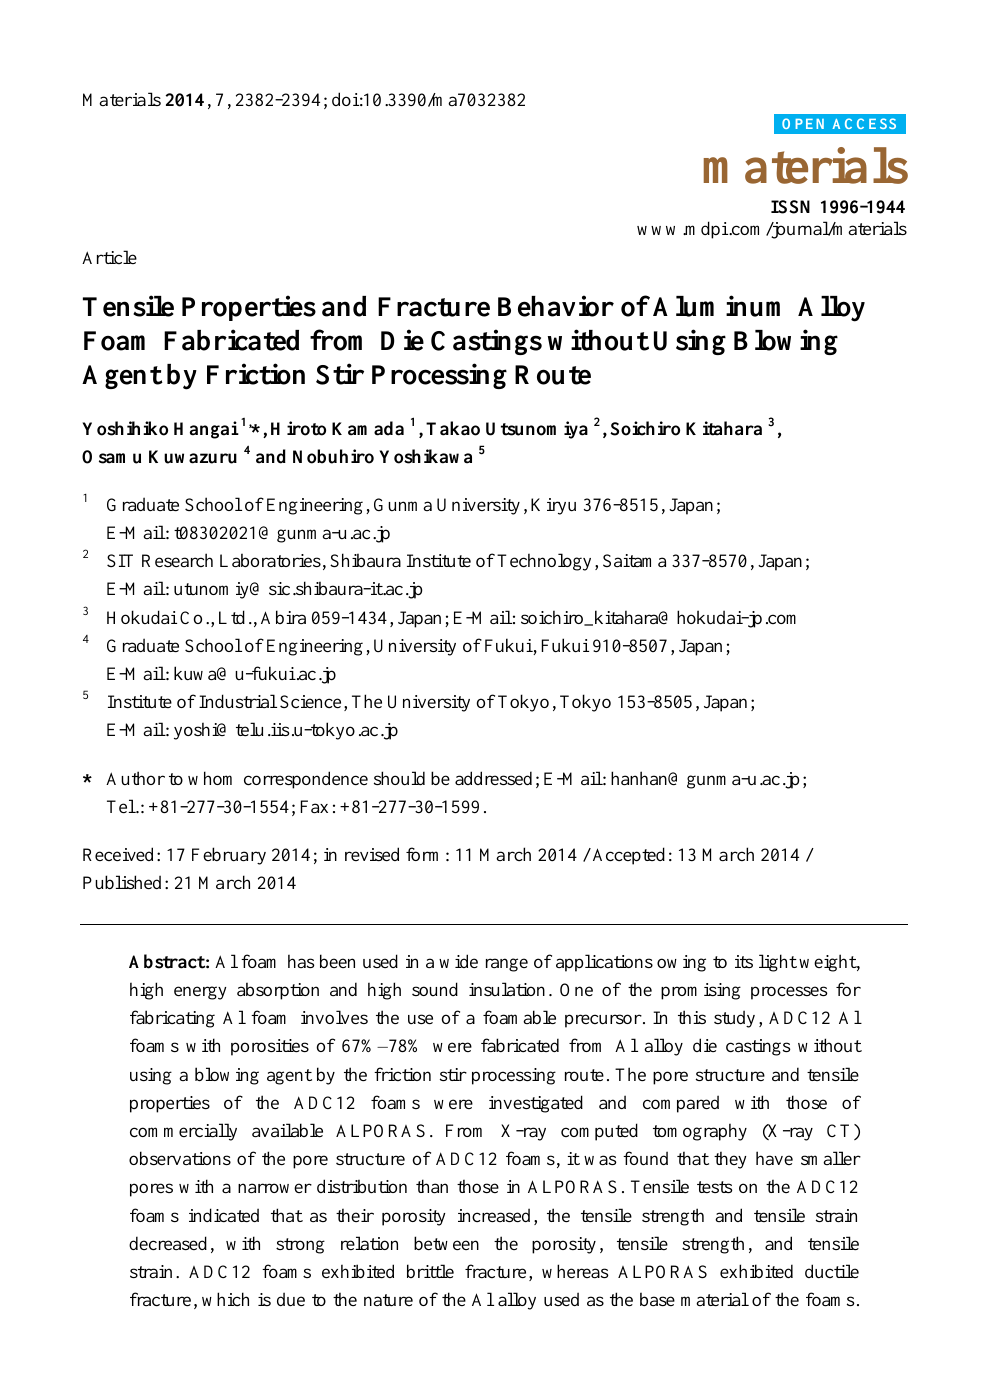 Tensile Properties and Fracture Behavior of Aluminum Alloy